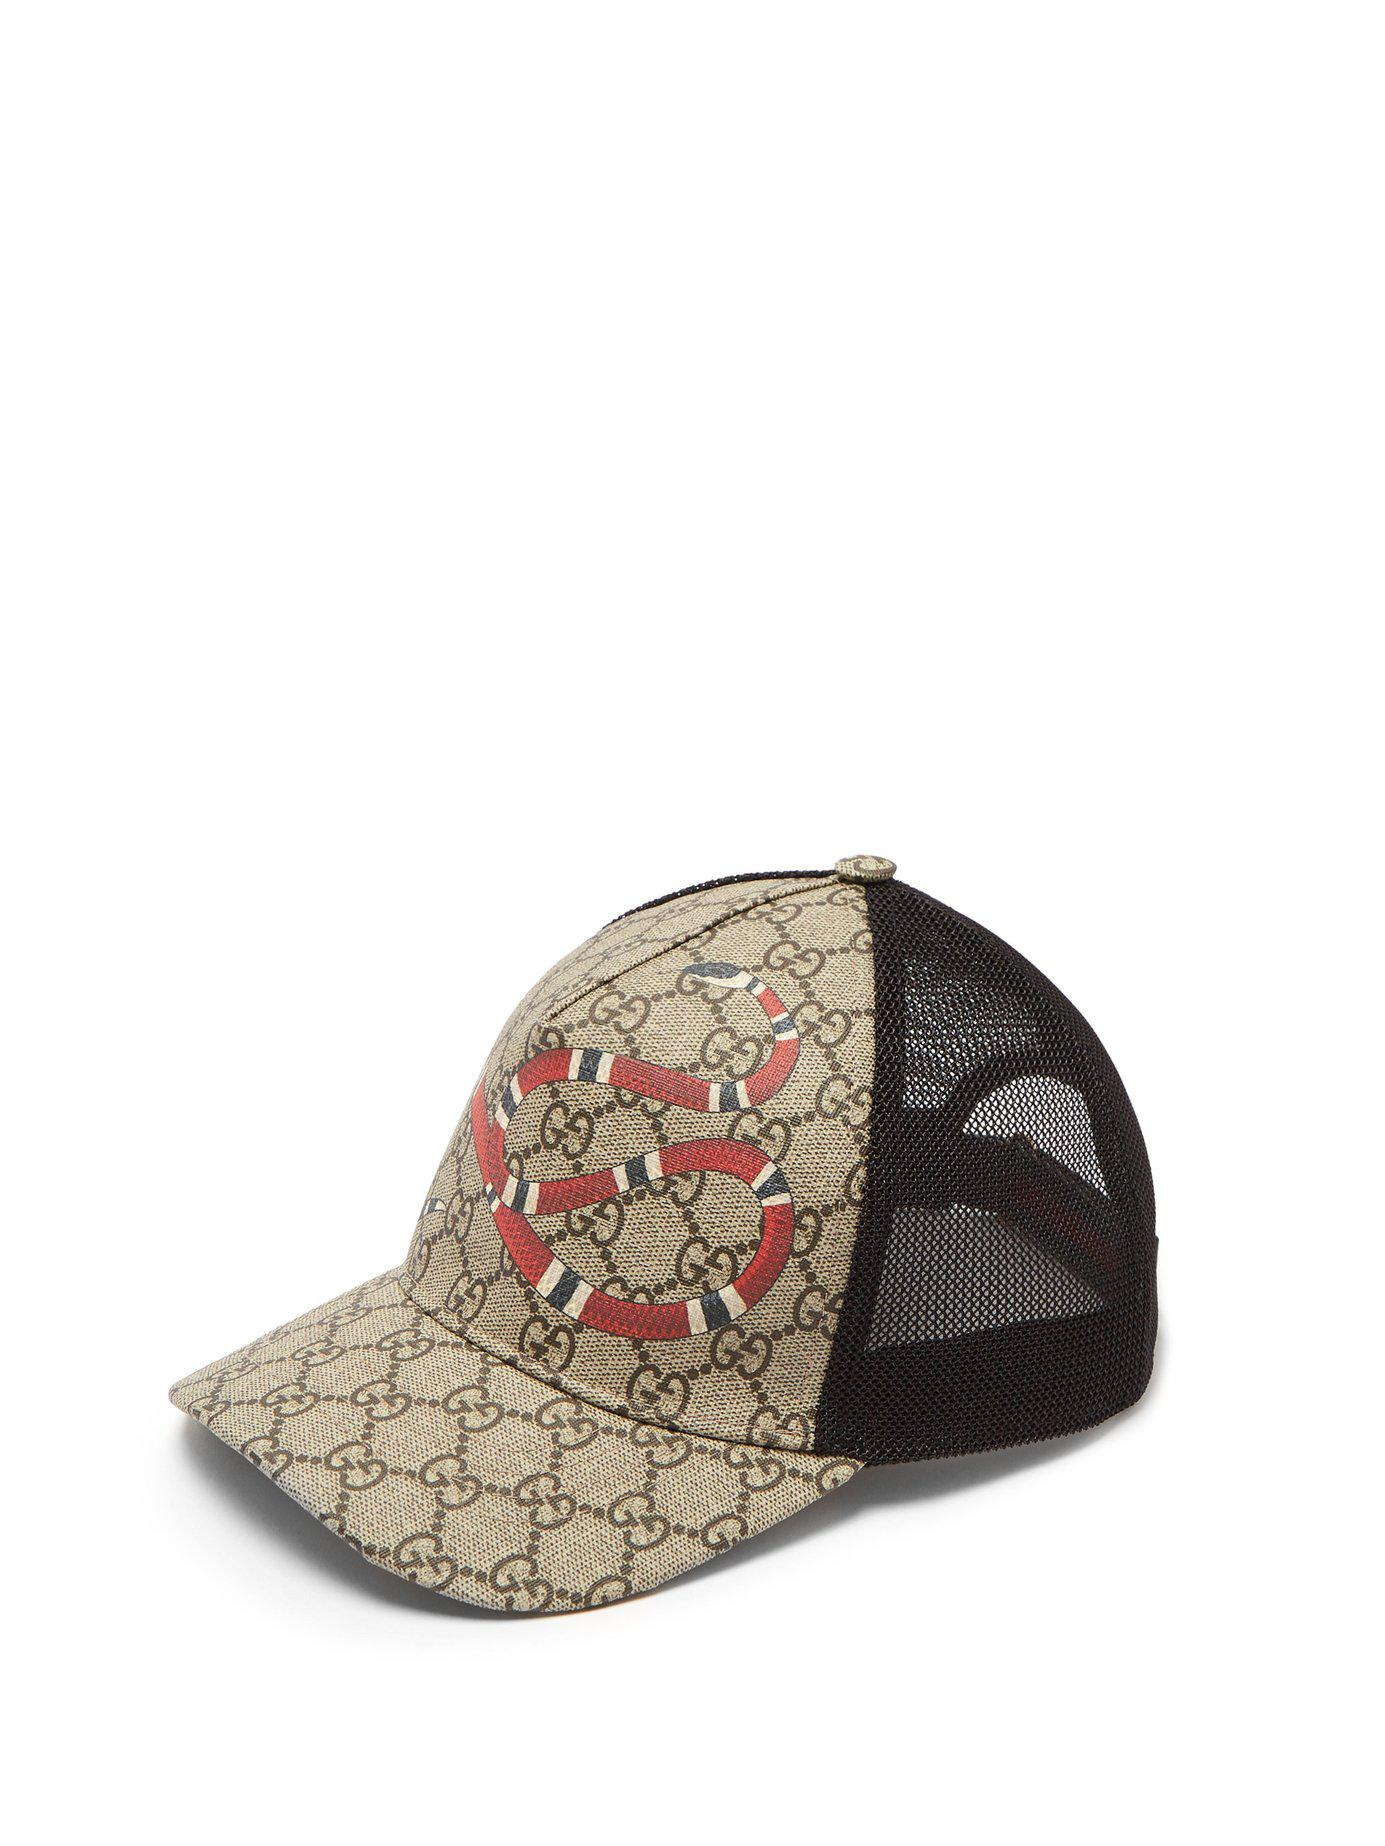 438aecd59e140 Gucci Gg Supreme And Kingsnake Print Mesh Cap in Natural for Men - Lyst